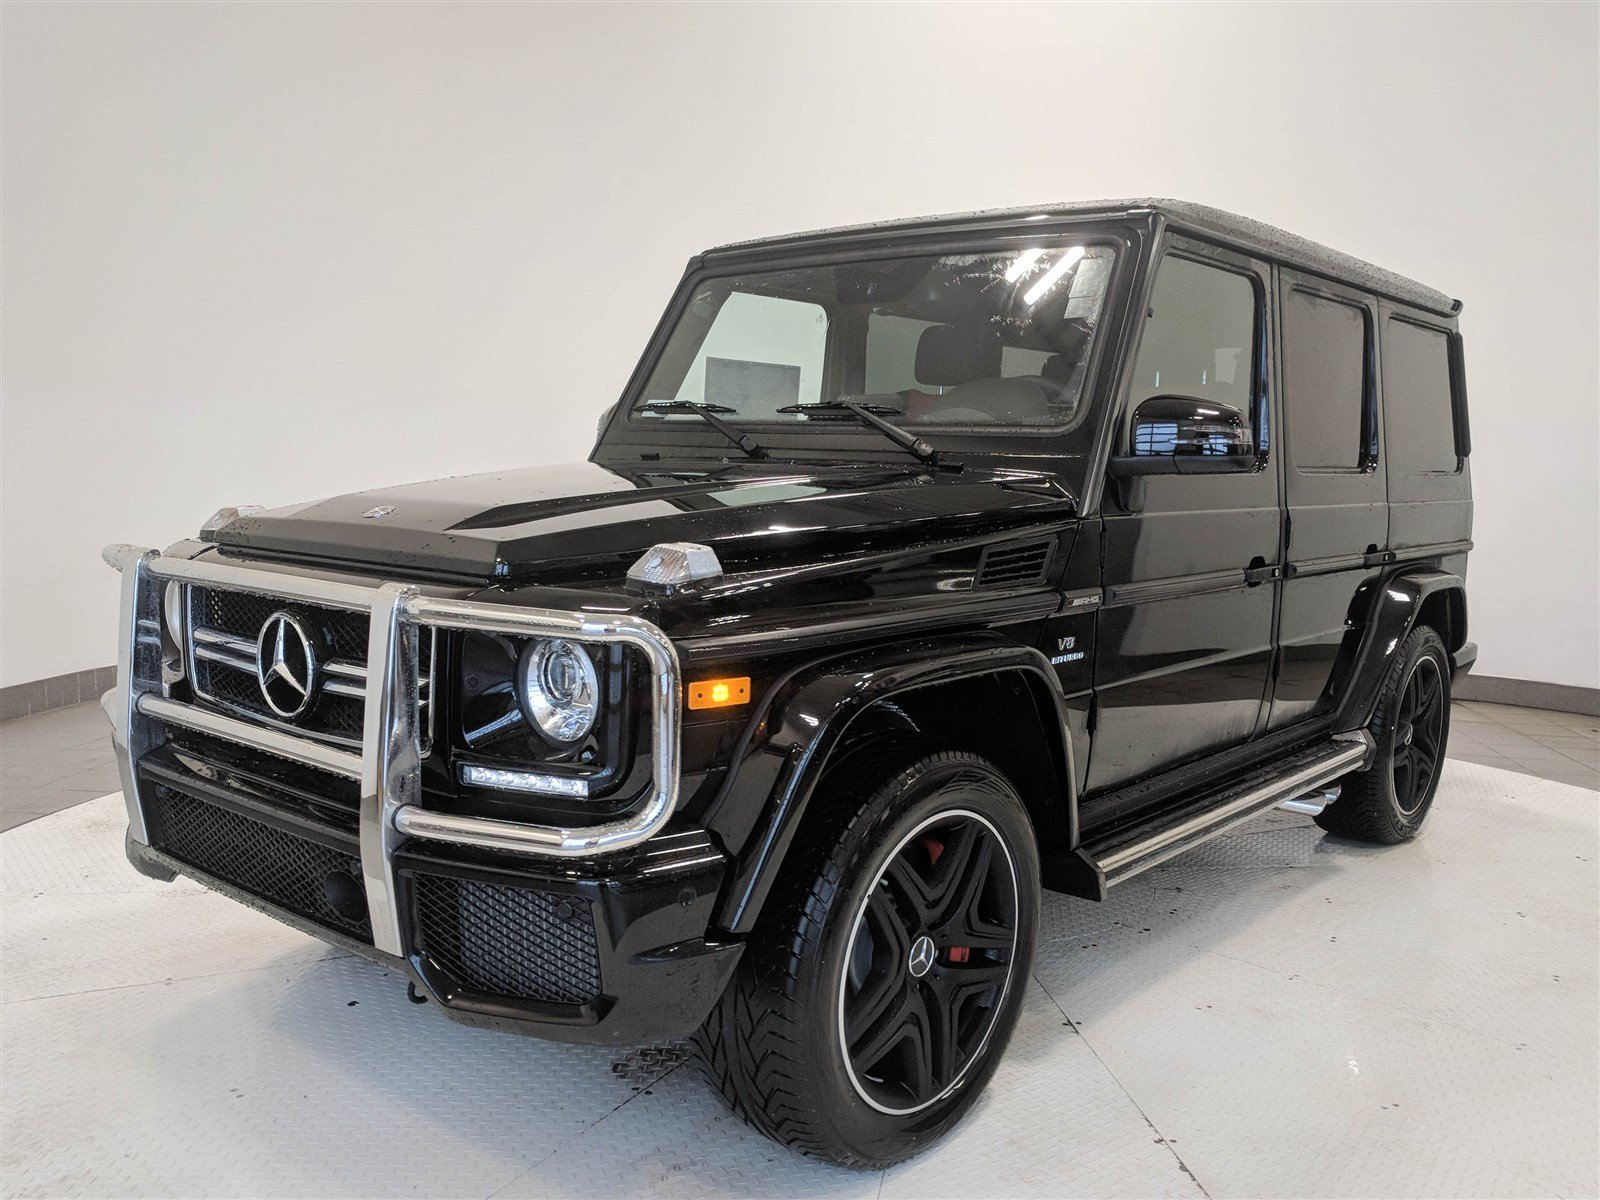 for benz bison gwagon lease hamann beverly and g inc gwagen new sale glendale gelik auto amg silver sales leasing portfolio car class black brabus mercedes motors wald